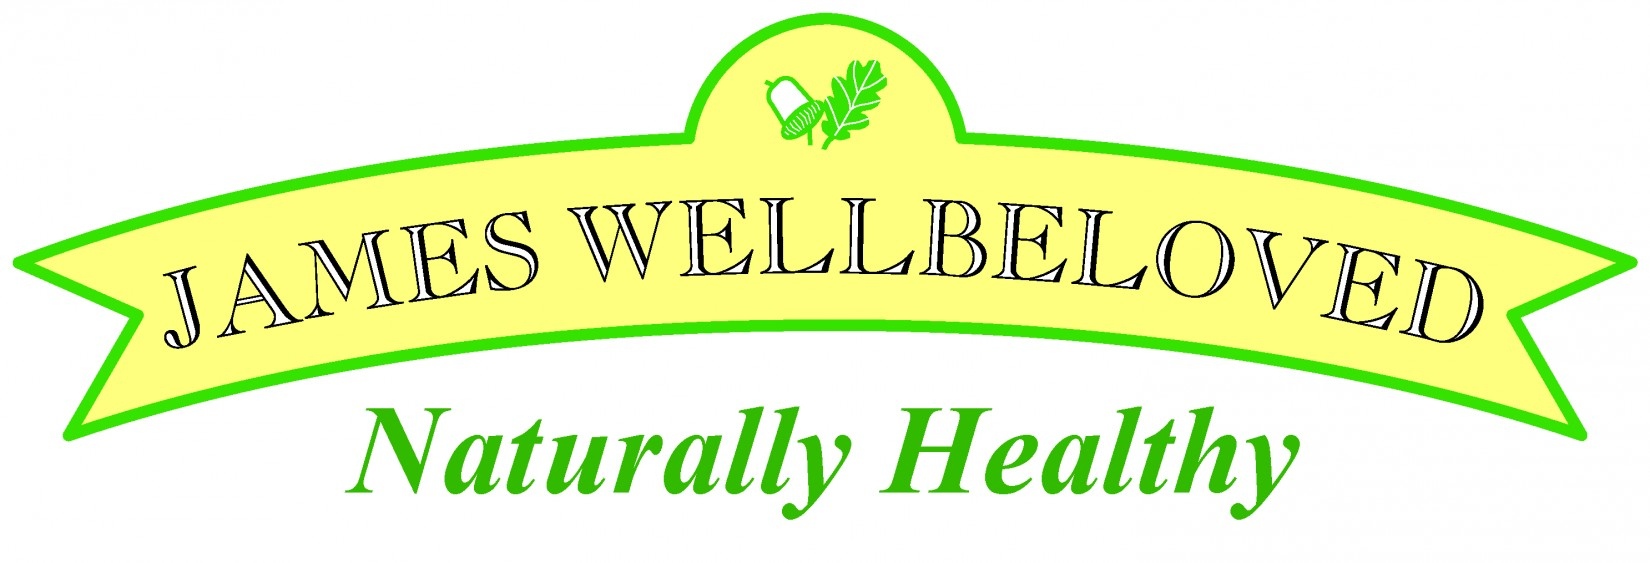 James Wellbeloved font